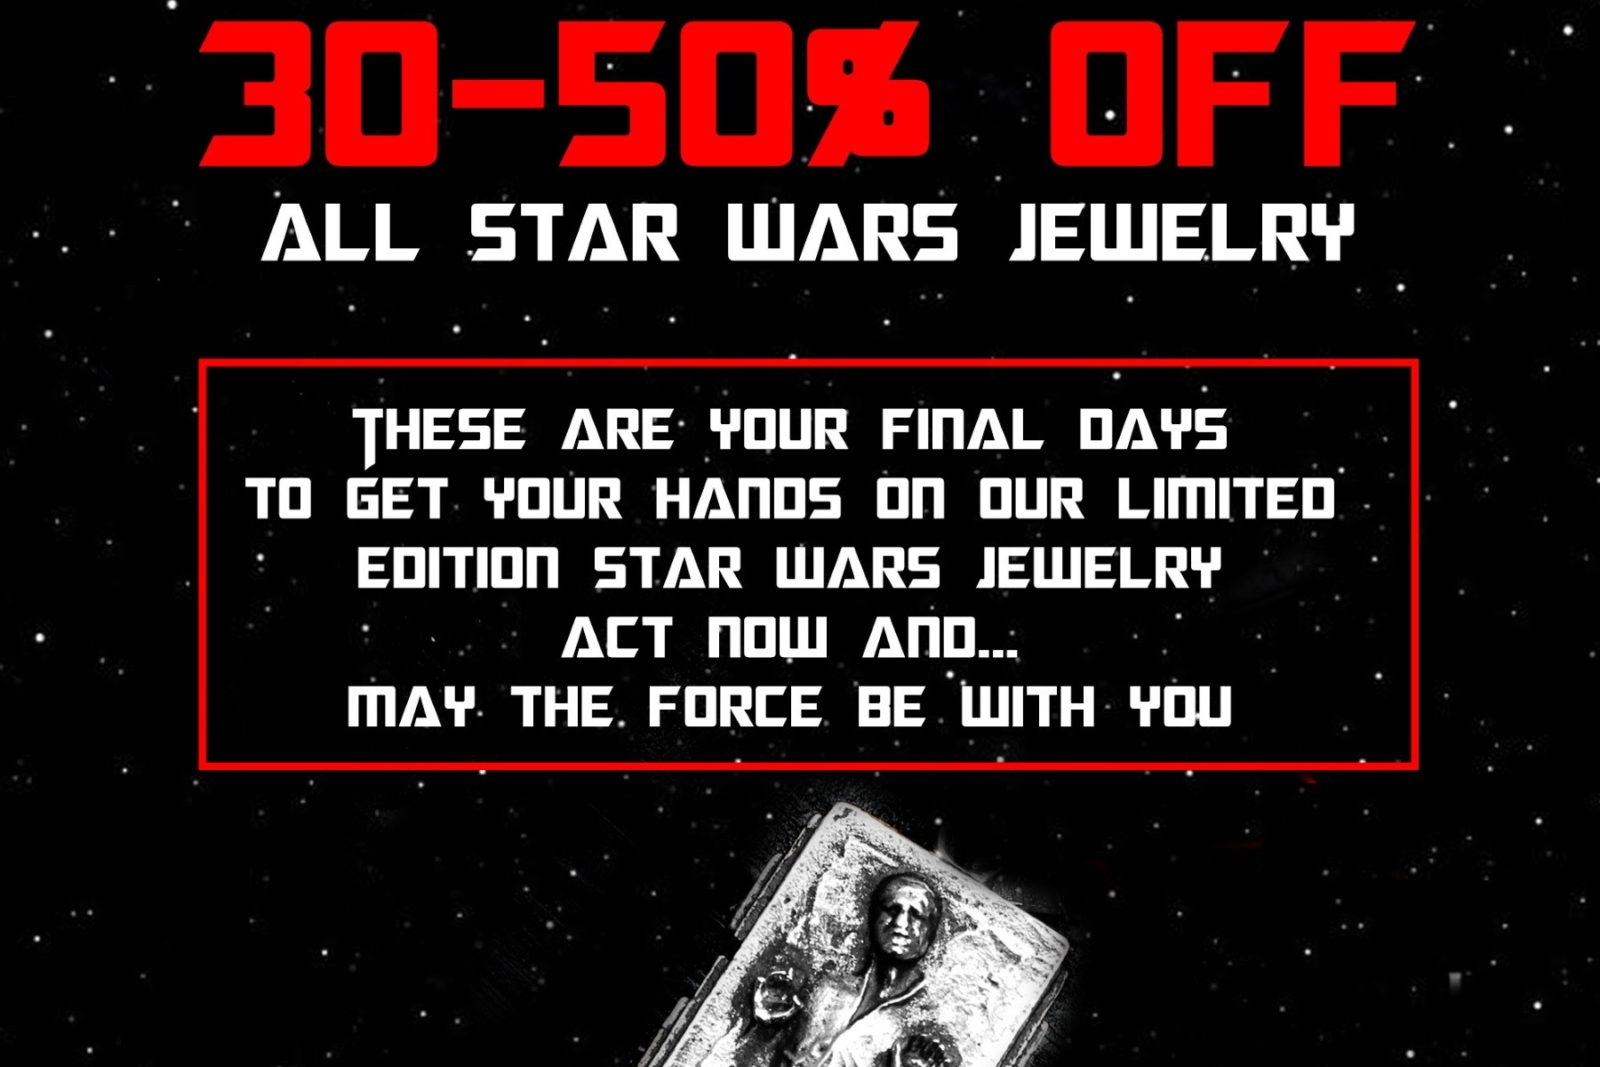 Han Cholo x Star Wars final sale